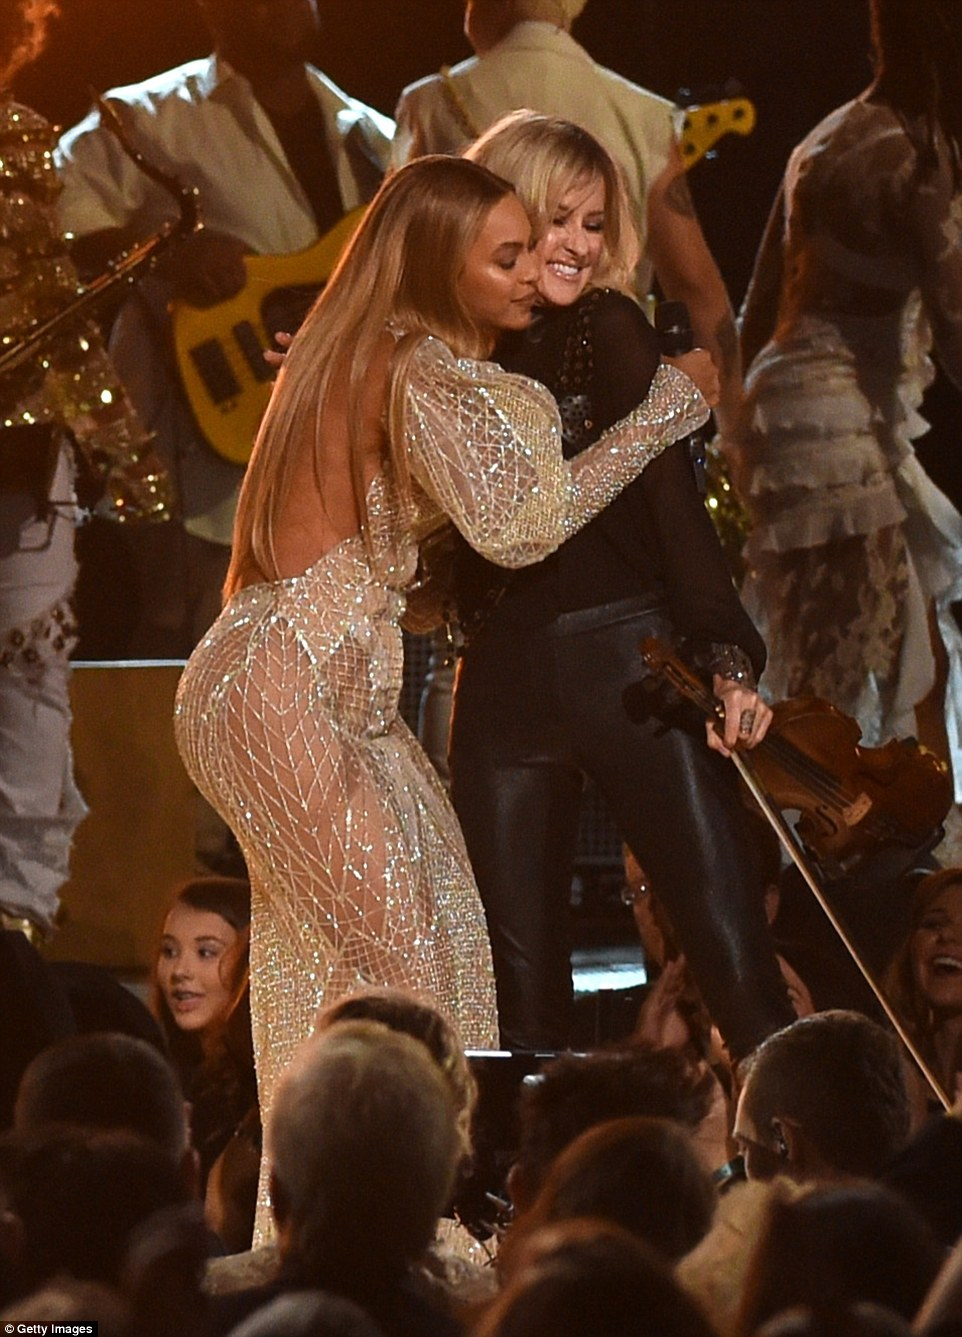 Hugging it out: The two talented women shared a sweet embrace at the end of the performance